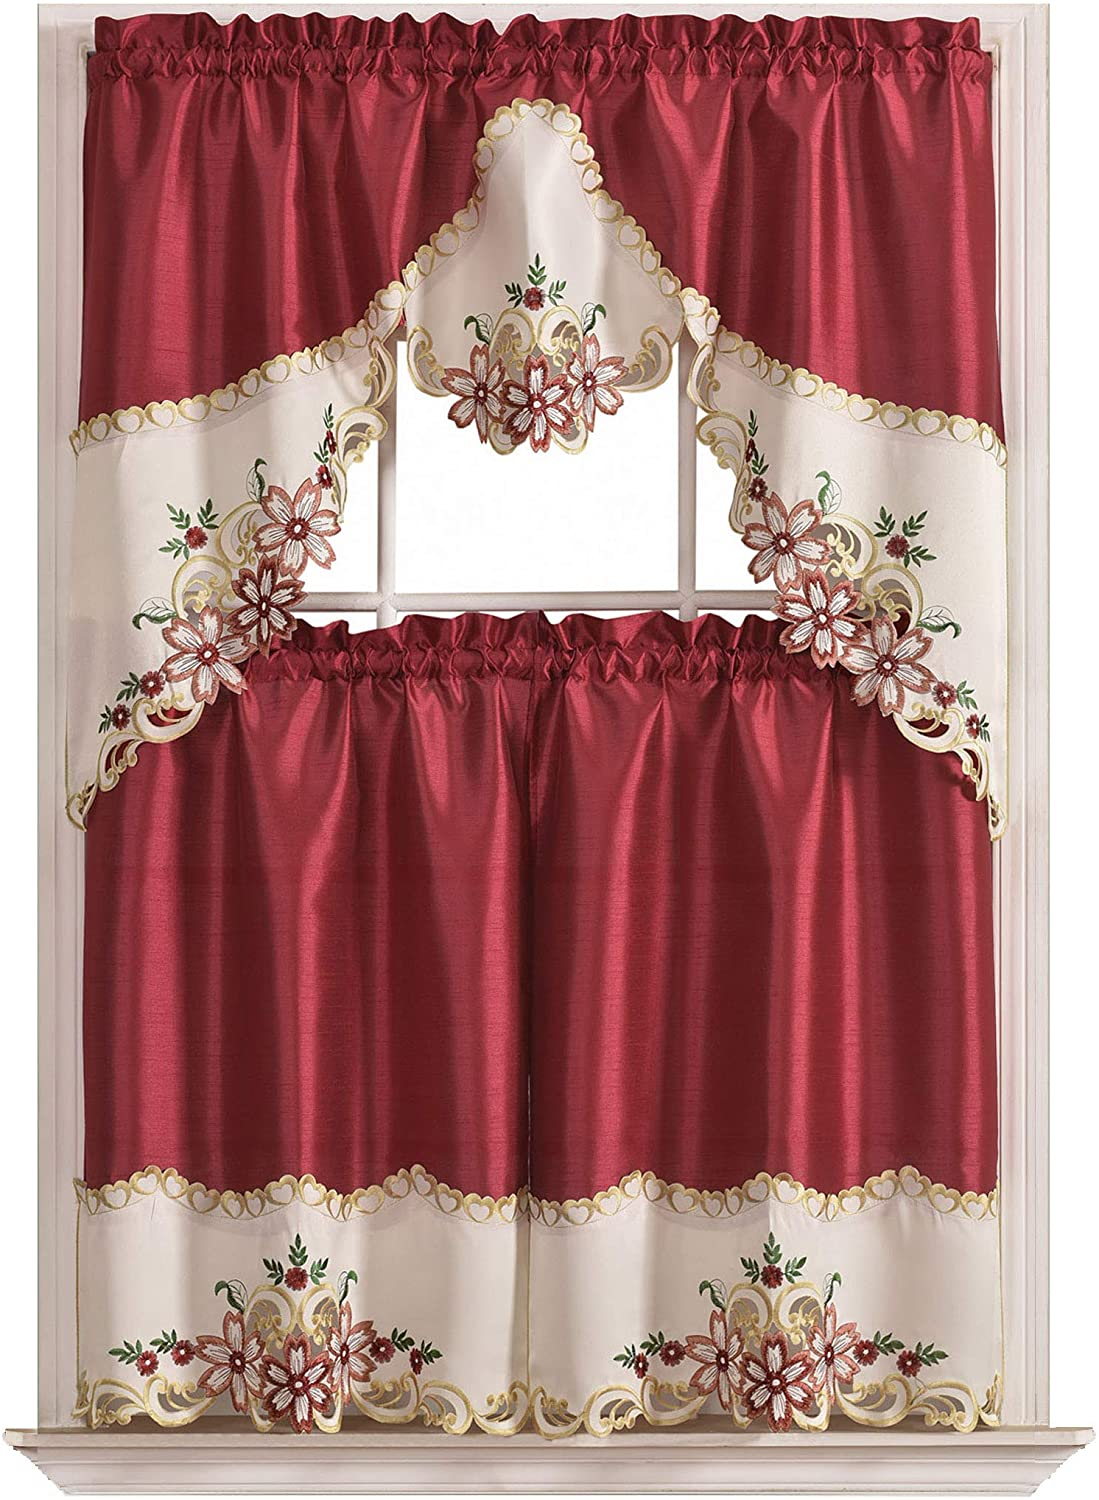 GOHD Golden Ocean Home Decor Arch Floral Kitchen Cafe Curtain Set. Window Treatment Set for Small Windows. Nice Matching Color Floral Embroidery on Border with cutworks (Wine)